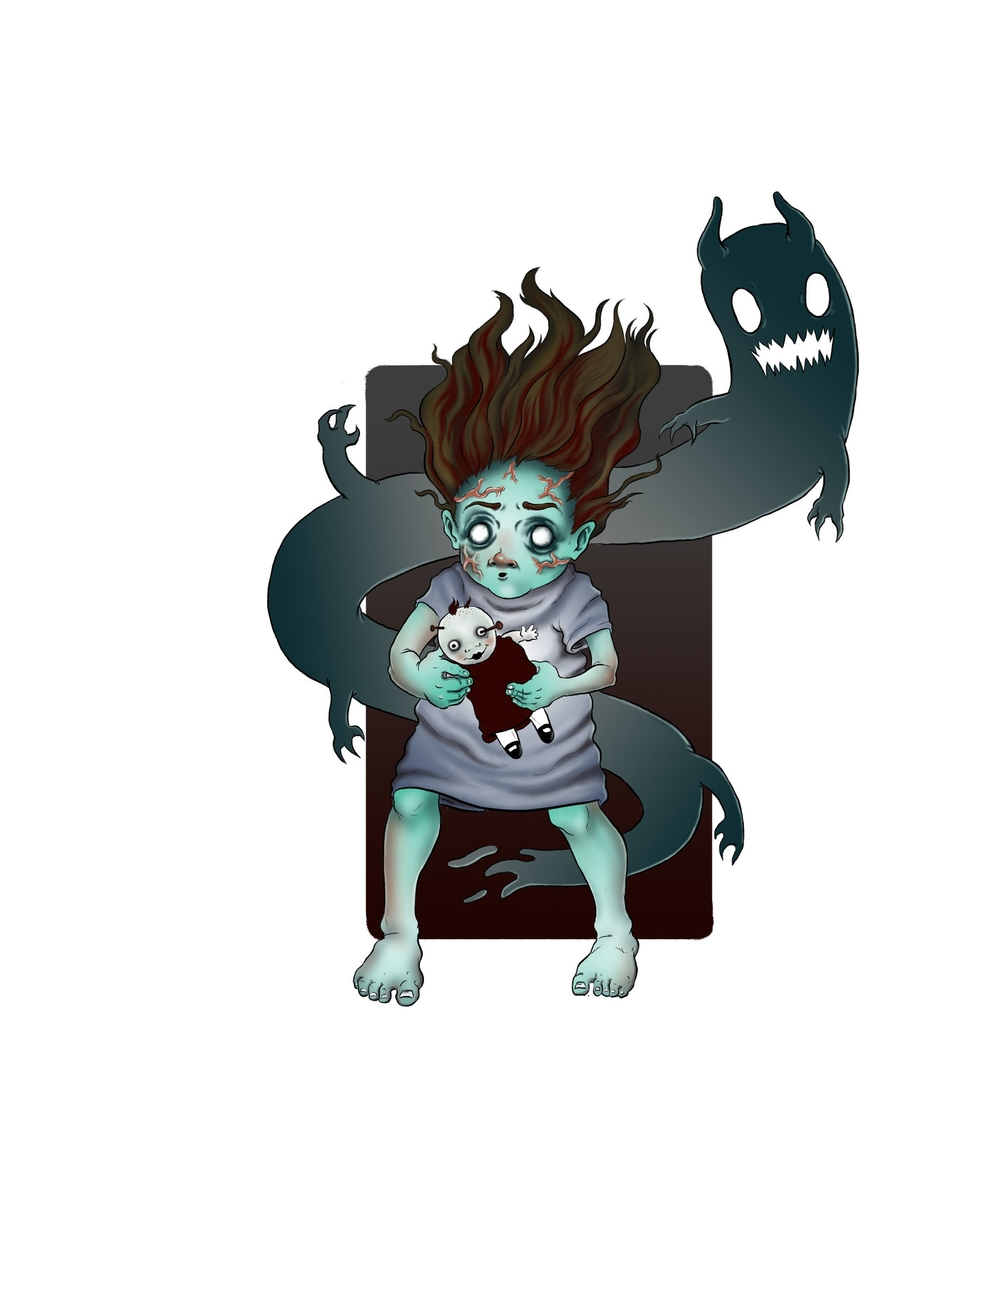 Poltergeist Child Design #2